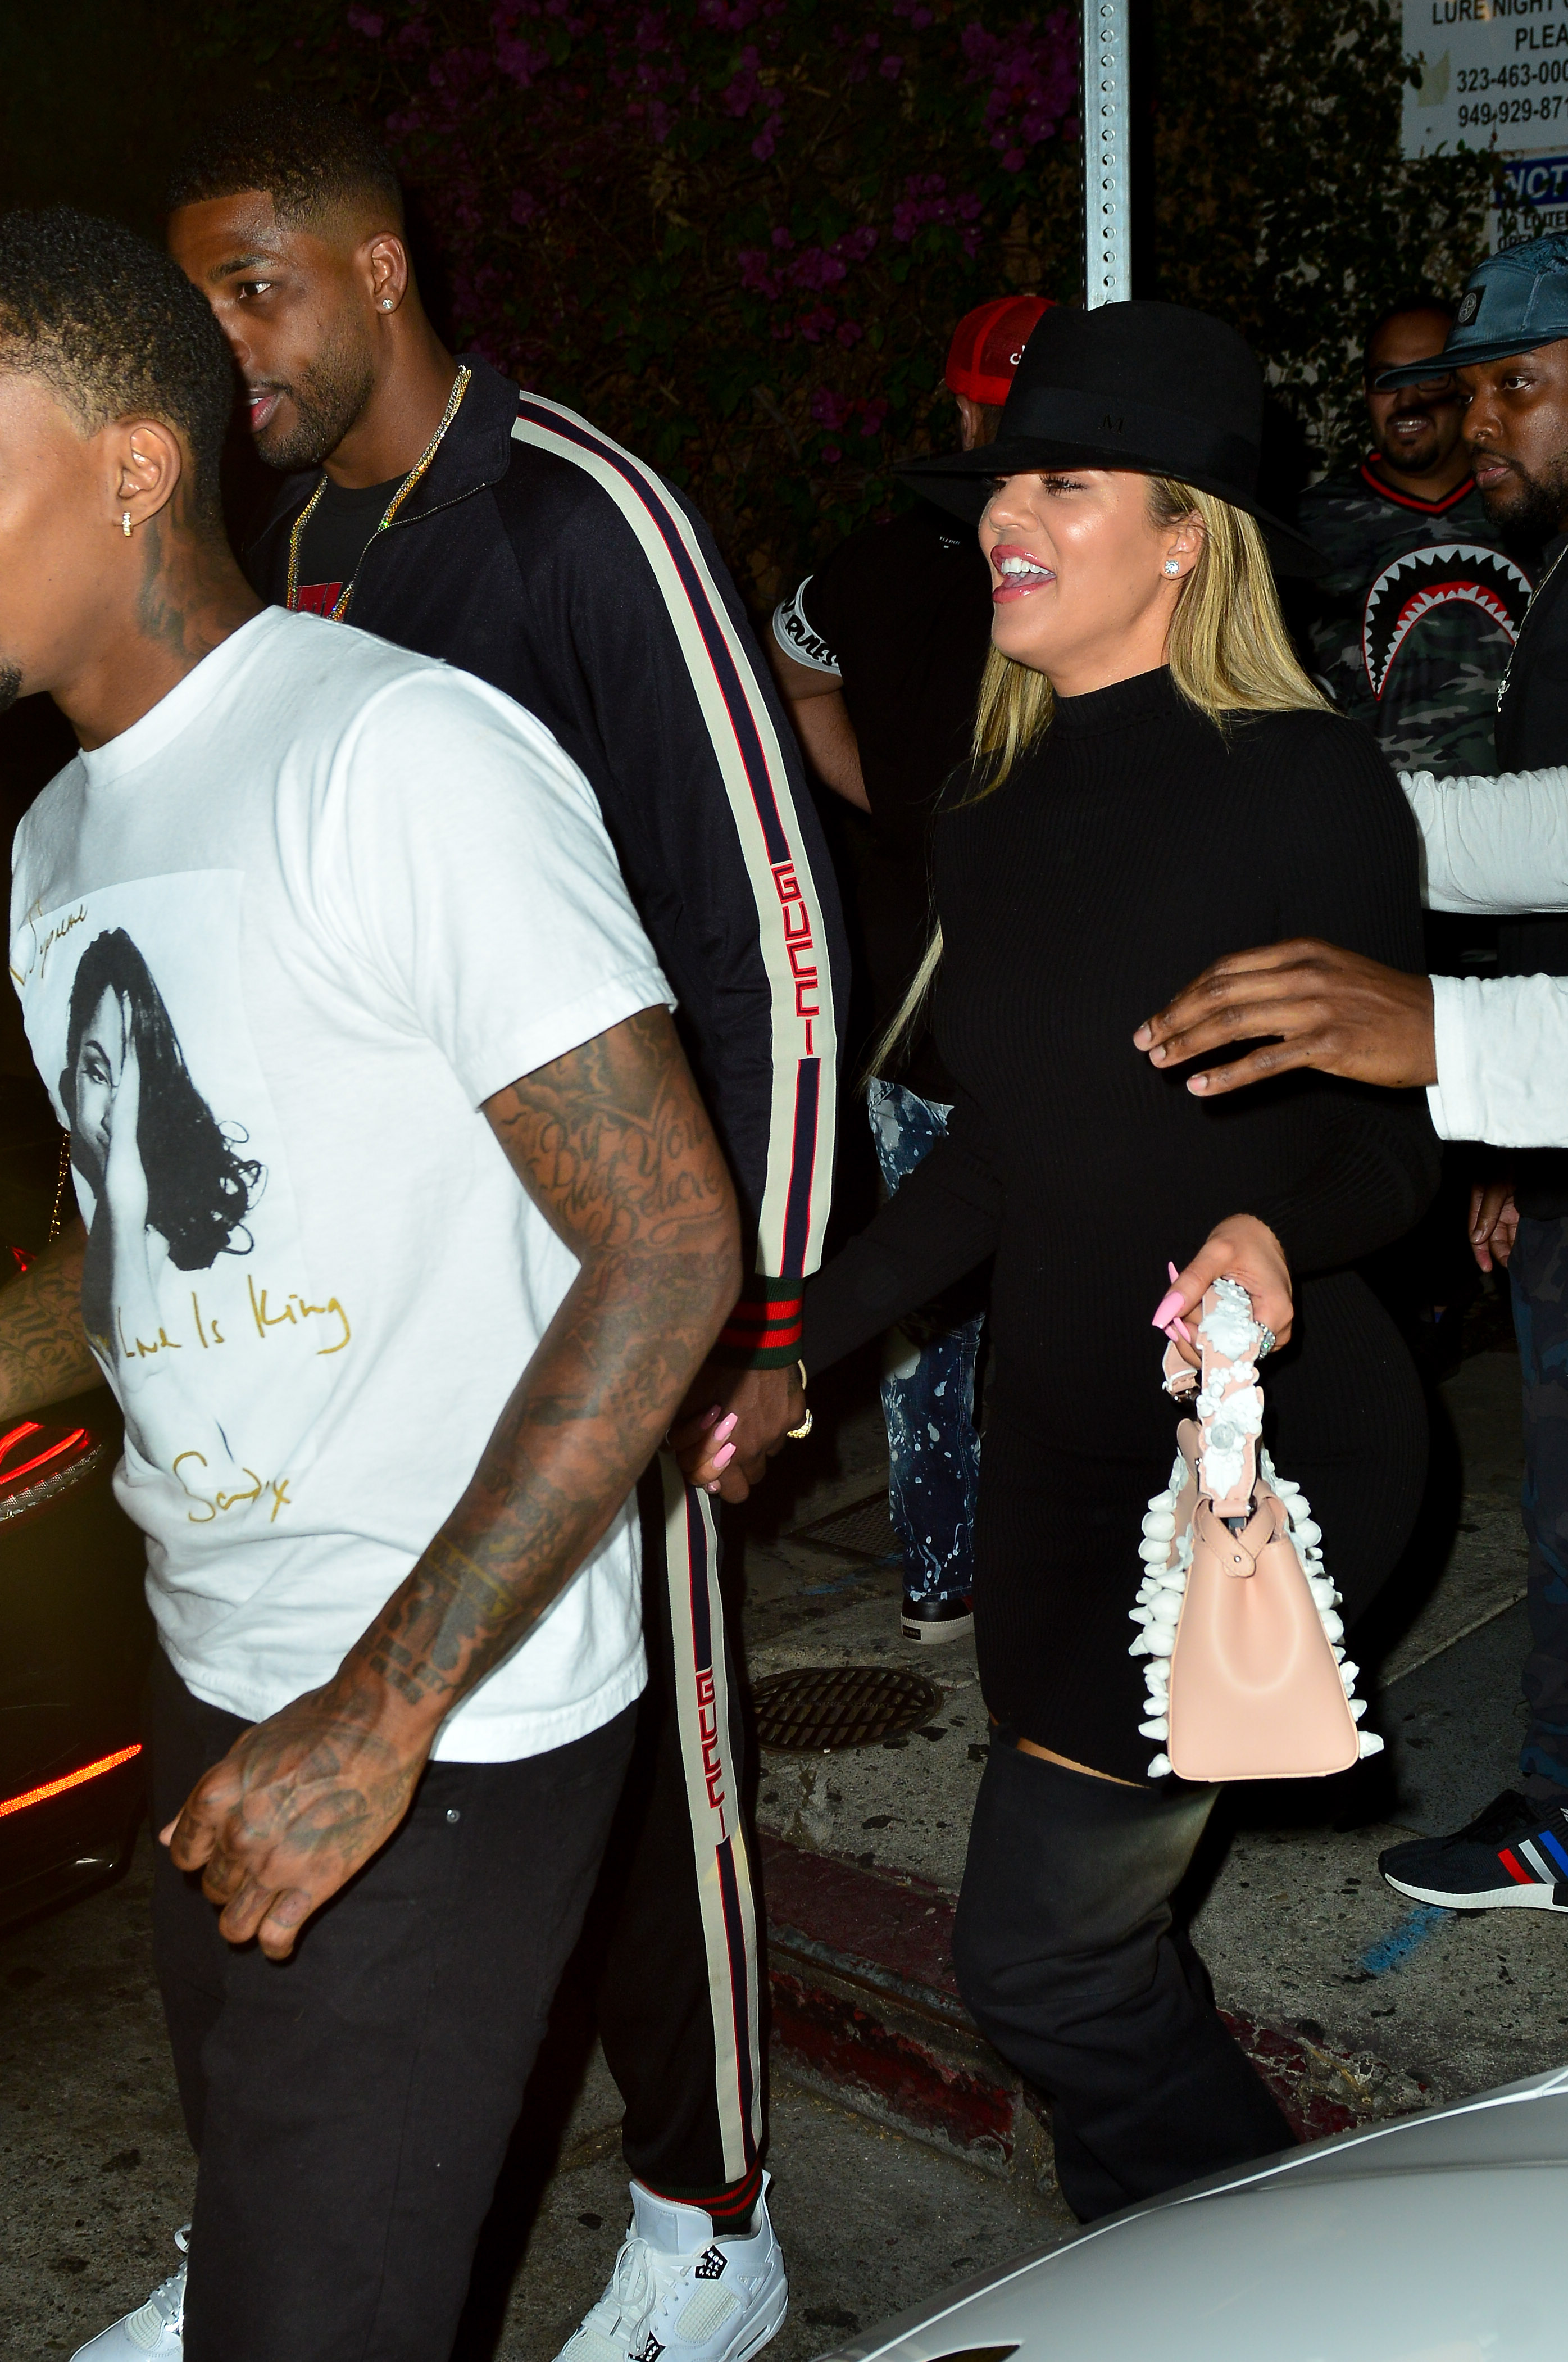 Khloe Kardashian and boyfriend Tristan Thompson leaving Lure Night Club